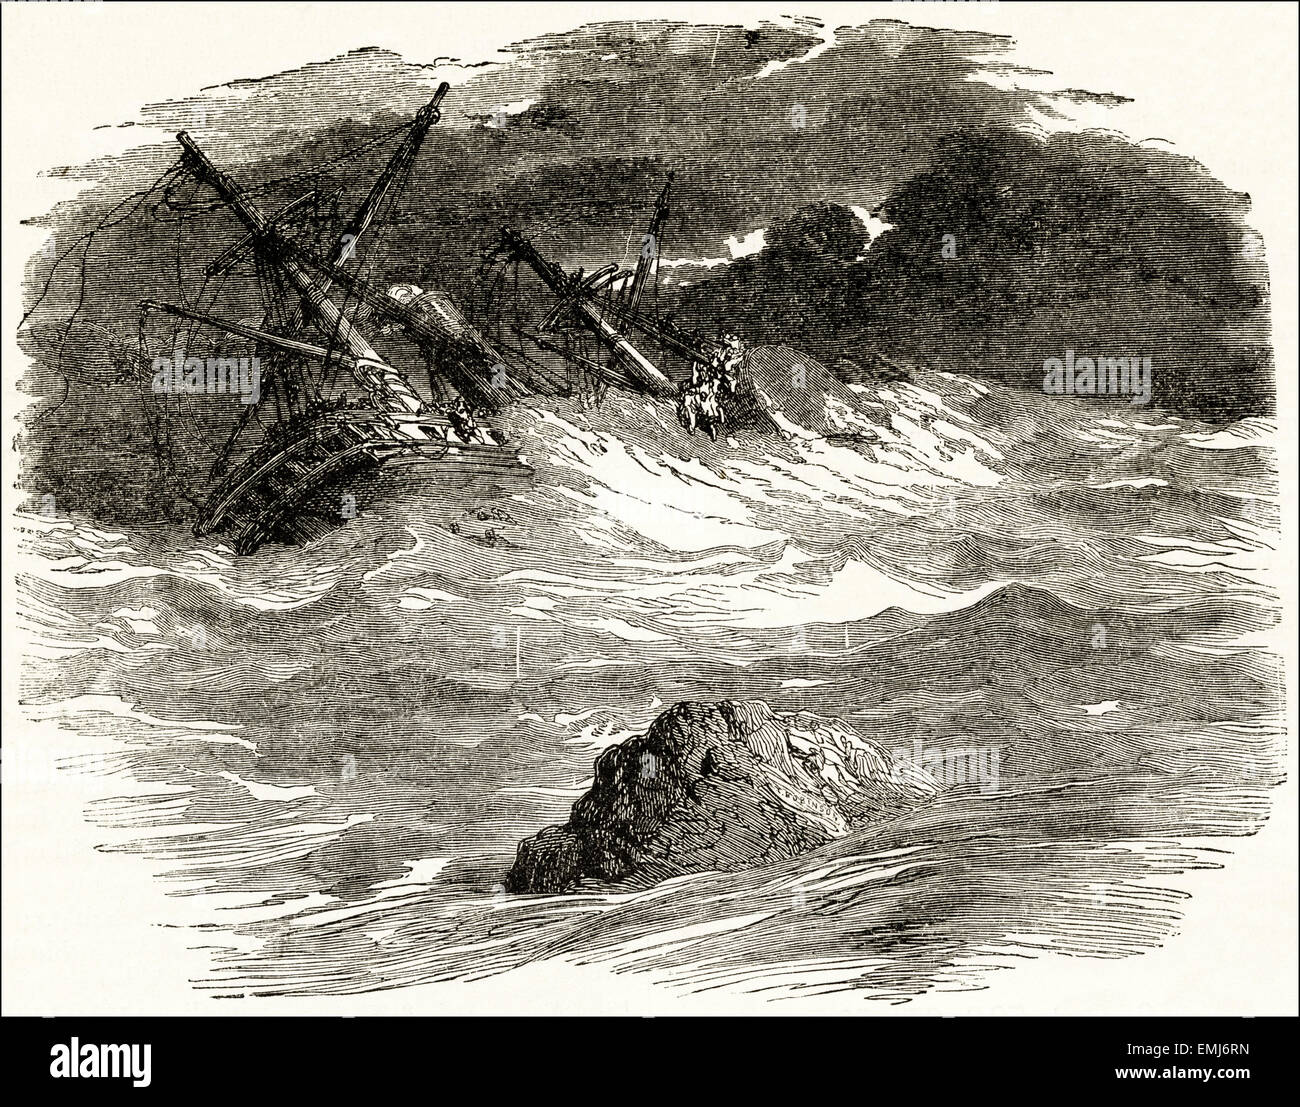 Sailing ship wrecked on rocks. Victorian woodcut engraving dated 1890 - Stock Image